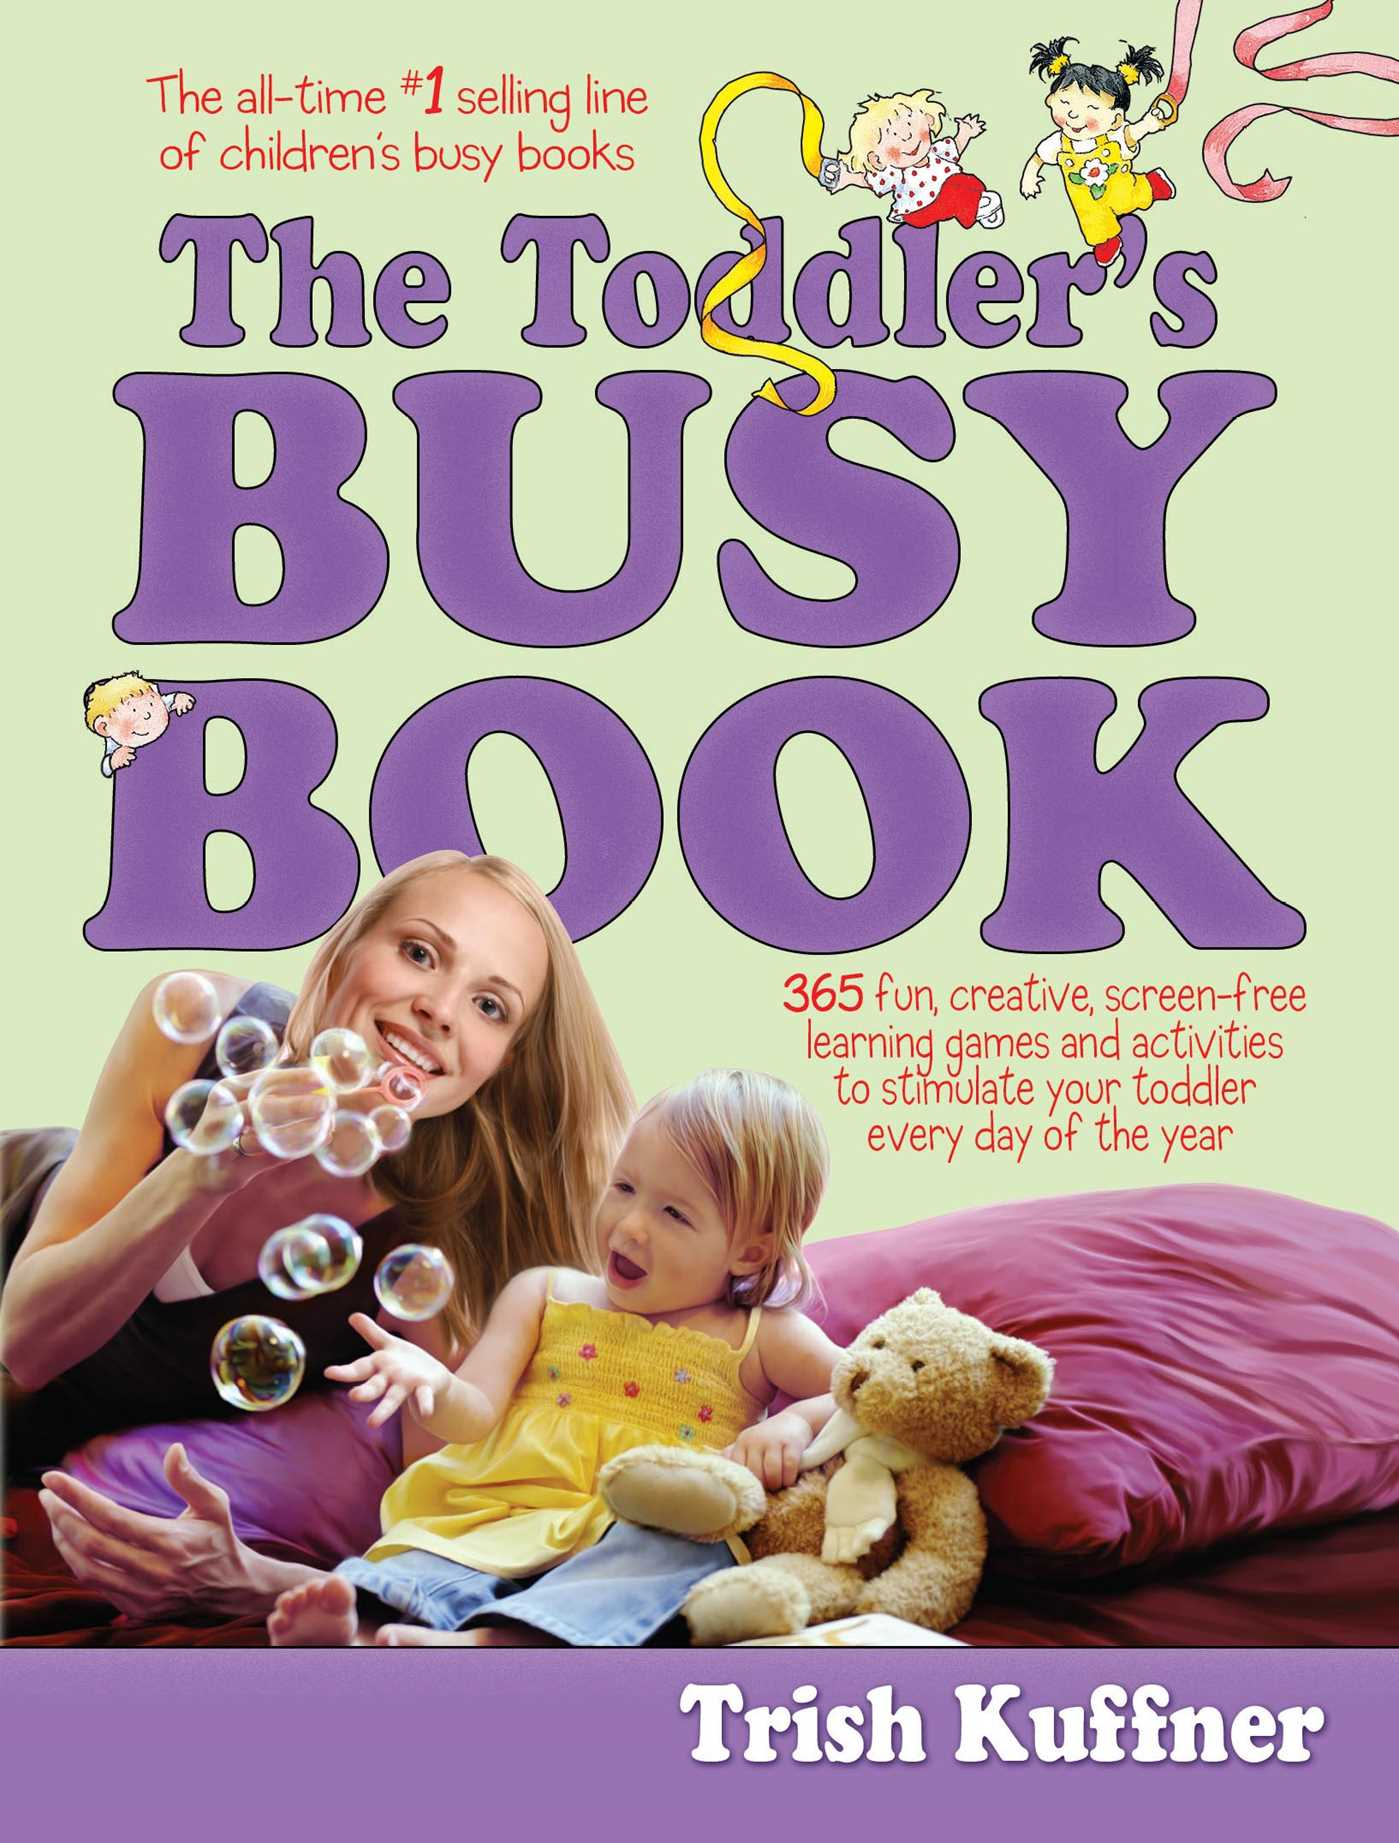 The-toddlers-busy-book-9781442404861_hr